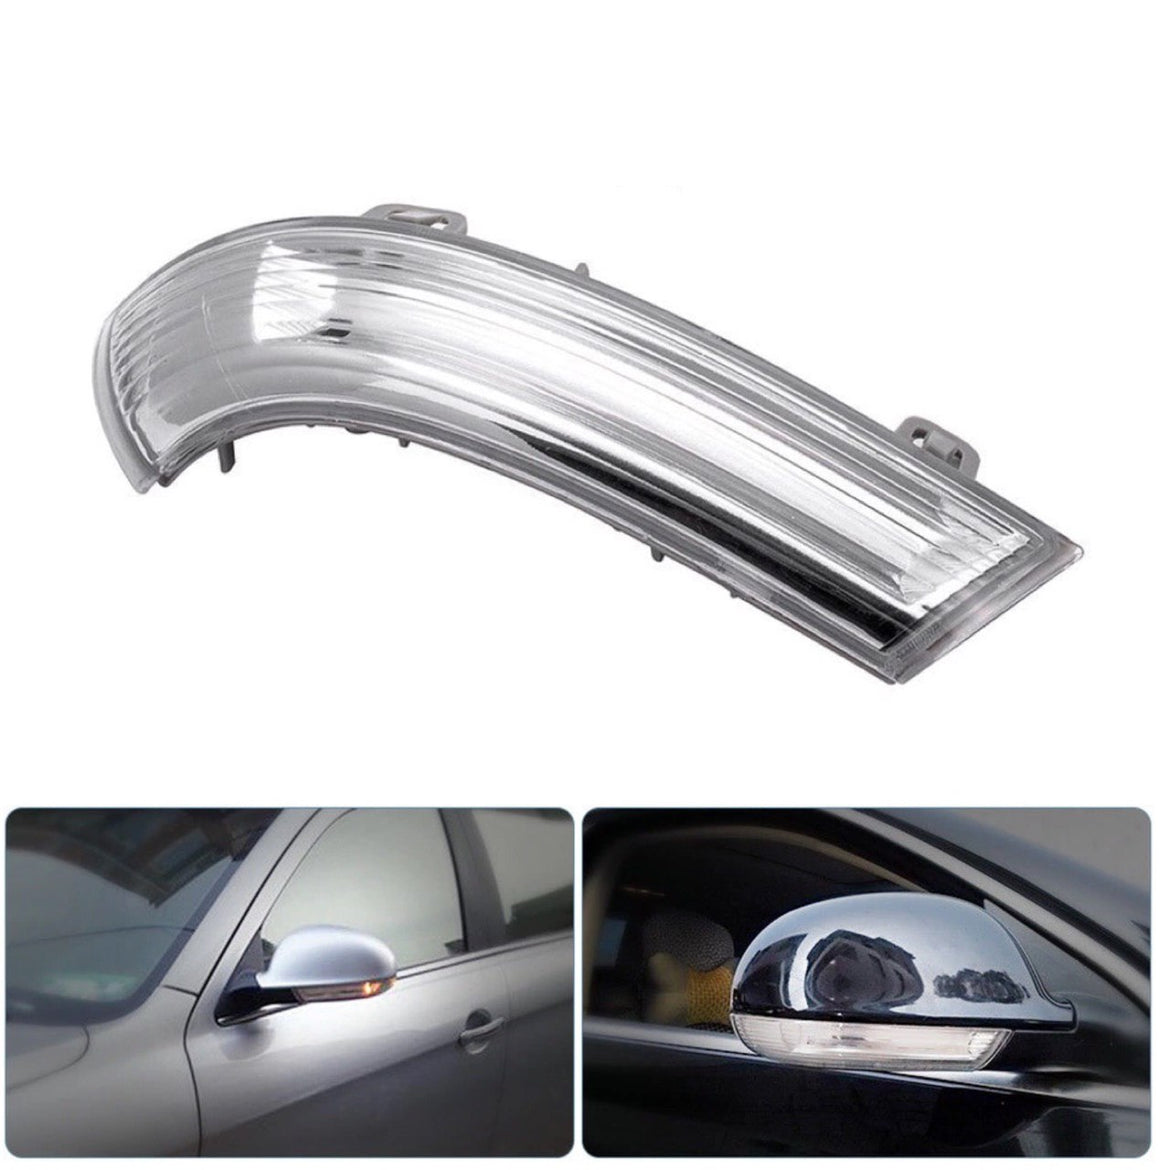 VW GOLF Right Side Wing Mirror Indicator For MK5 PASSAT GTI JETTA